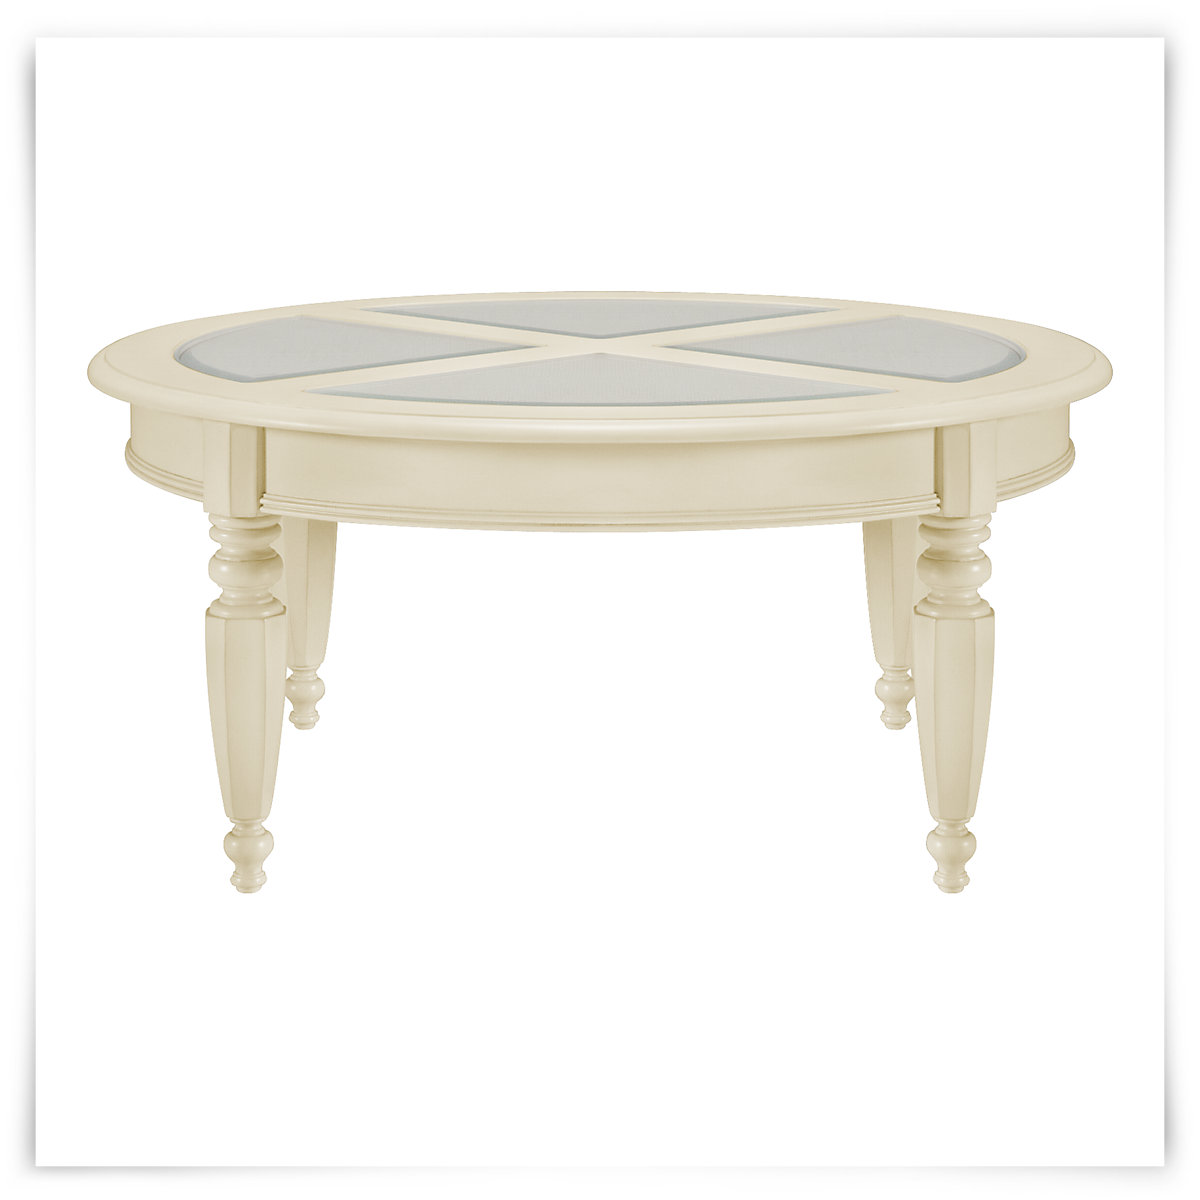 City Furniture Claire White Round Coffee Table